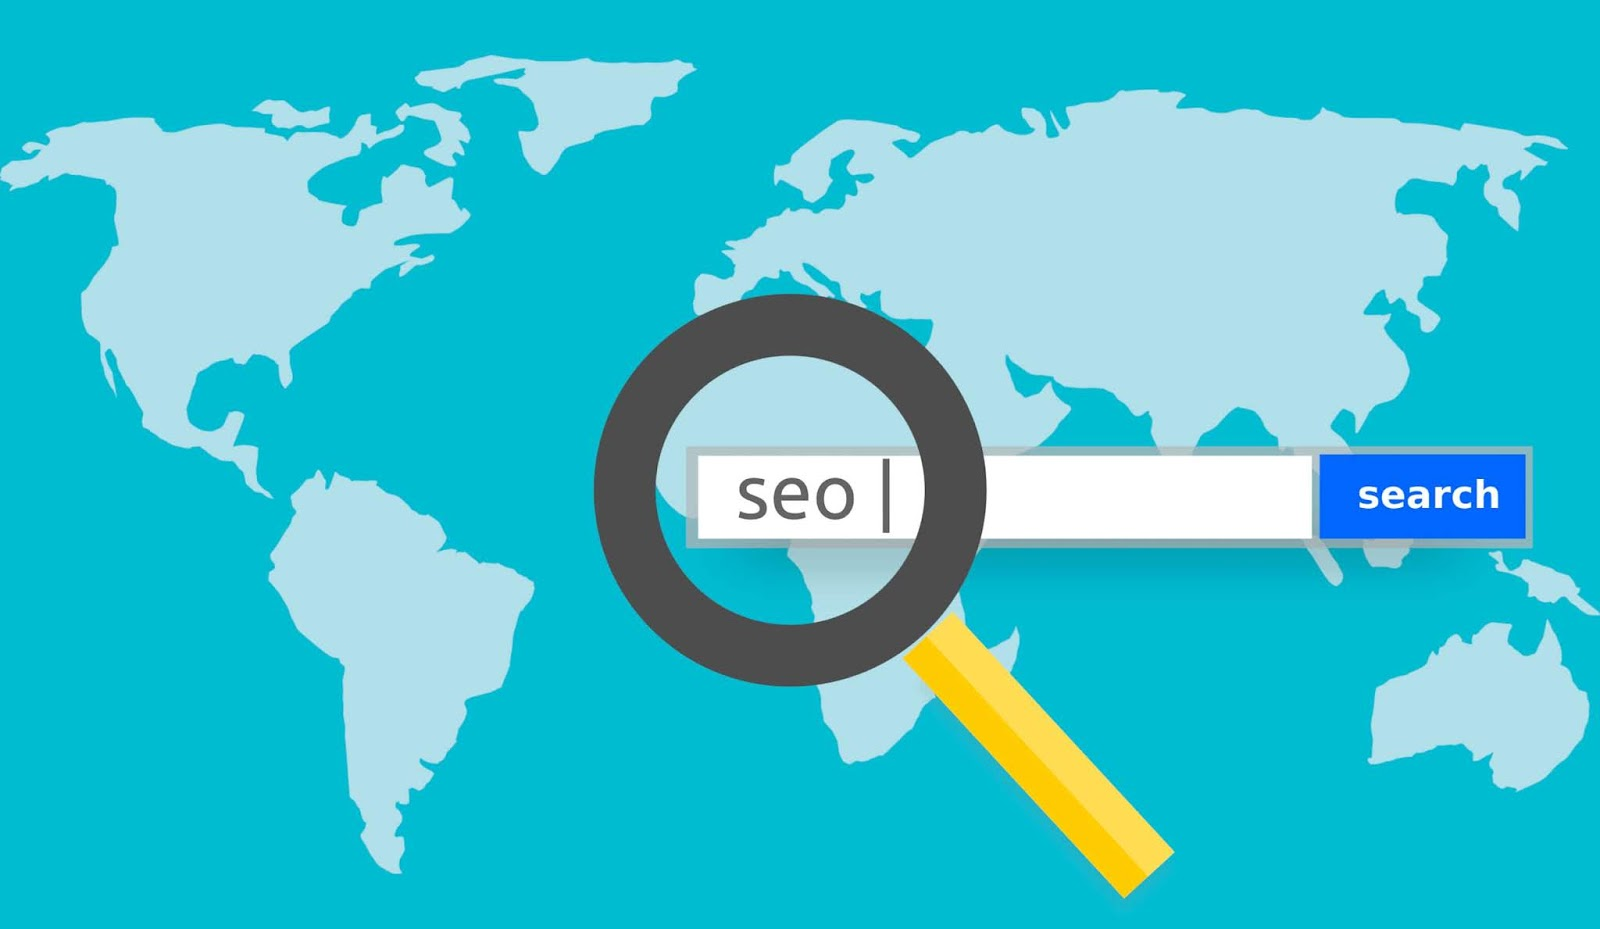 What is on page SEO complete guide for beginners, This SEO tutorial article will help you understand what is SEO, why we need SEO, what is keyword research, how does a search engine work, on-page SEO, off-page SEO, Google algorithms, types of SEO, what is an ideal website architecture, what is local SEO, how to measure your SEO performance, and at the end there will be a short quiz to test your understanding on SEO. SEO, or search engine optimization, is the work that we do to make our websites more prominent in the major search engines, such as Google, Yahoo, and Bing. The more prominent our web pages are in the search engines, the more visitors and searchers will be exposed to our business information. To some businesses, this is the primary channel for gaining new customers. The ultimate goal is for your company's web pages to appear at the top of the rankings when people search for terms related to your business. It has become a fundamental part of online business prospects and there are several experts and gurus in the field.